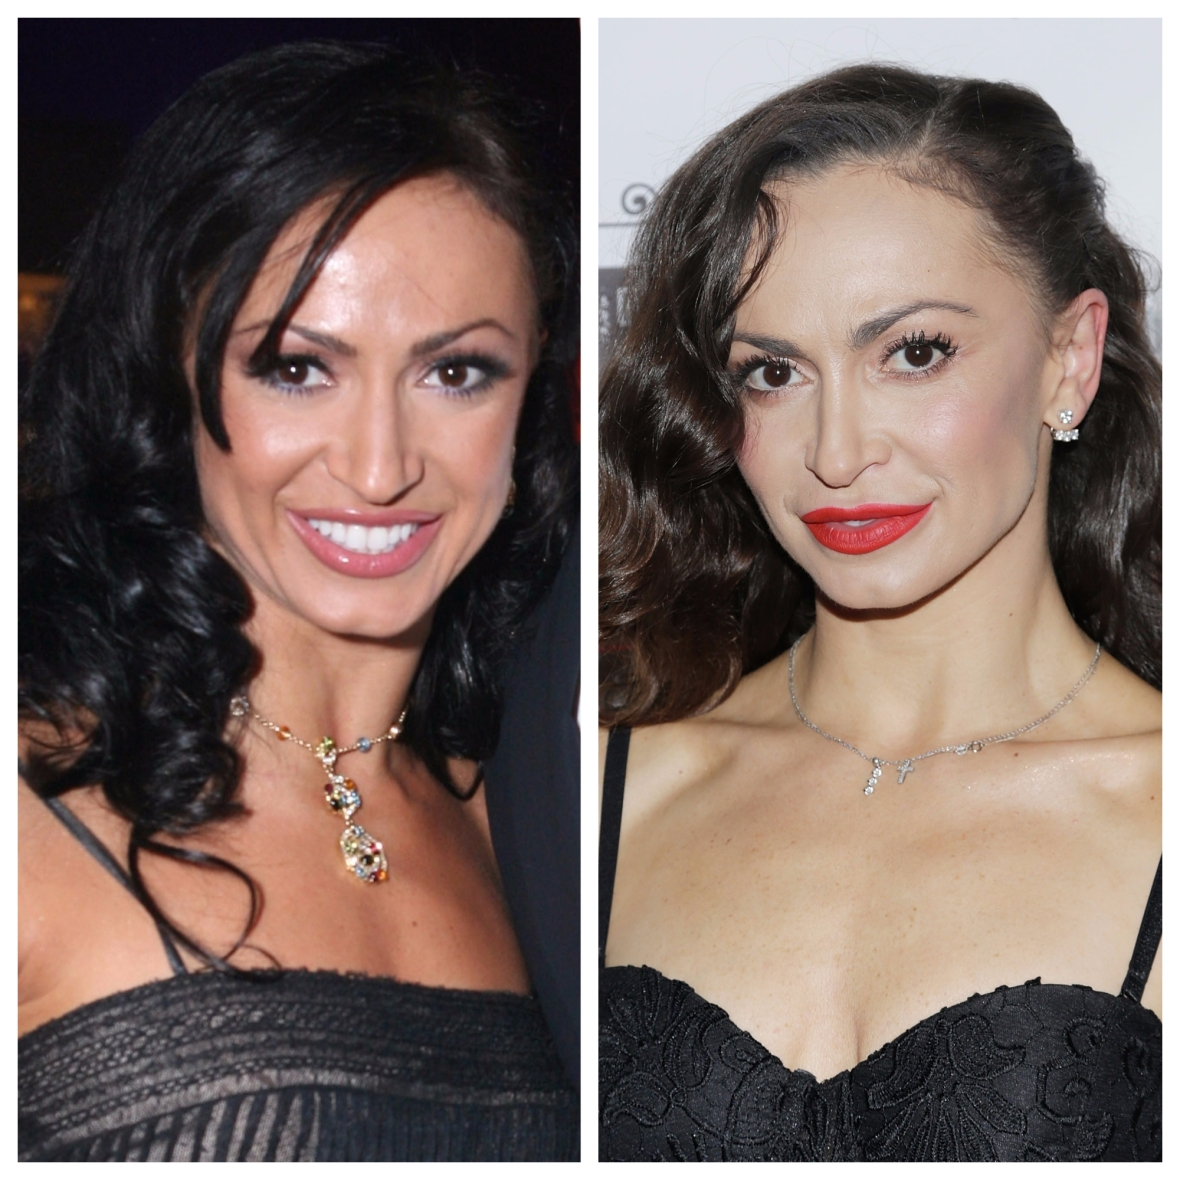 karina smirnoff then & now getty images